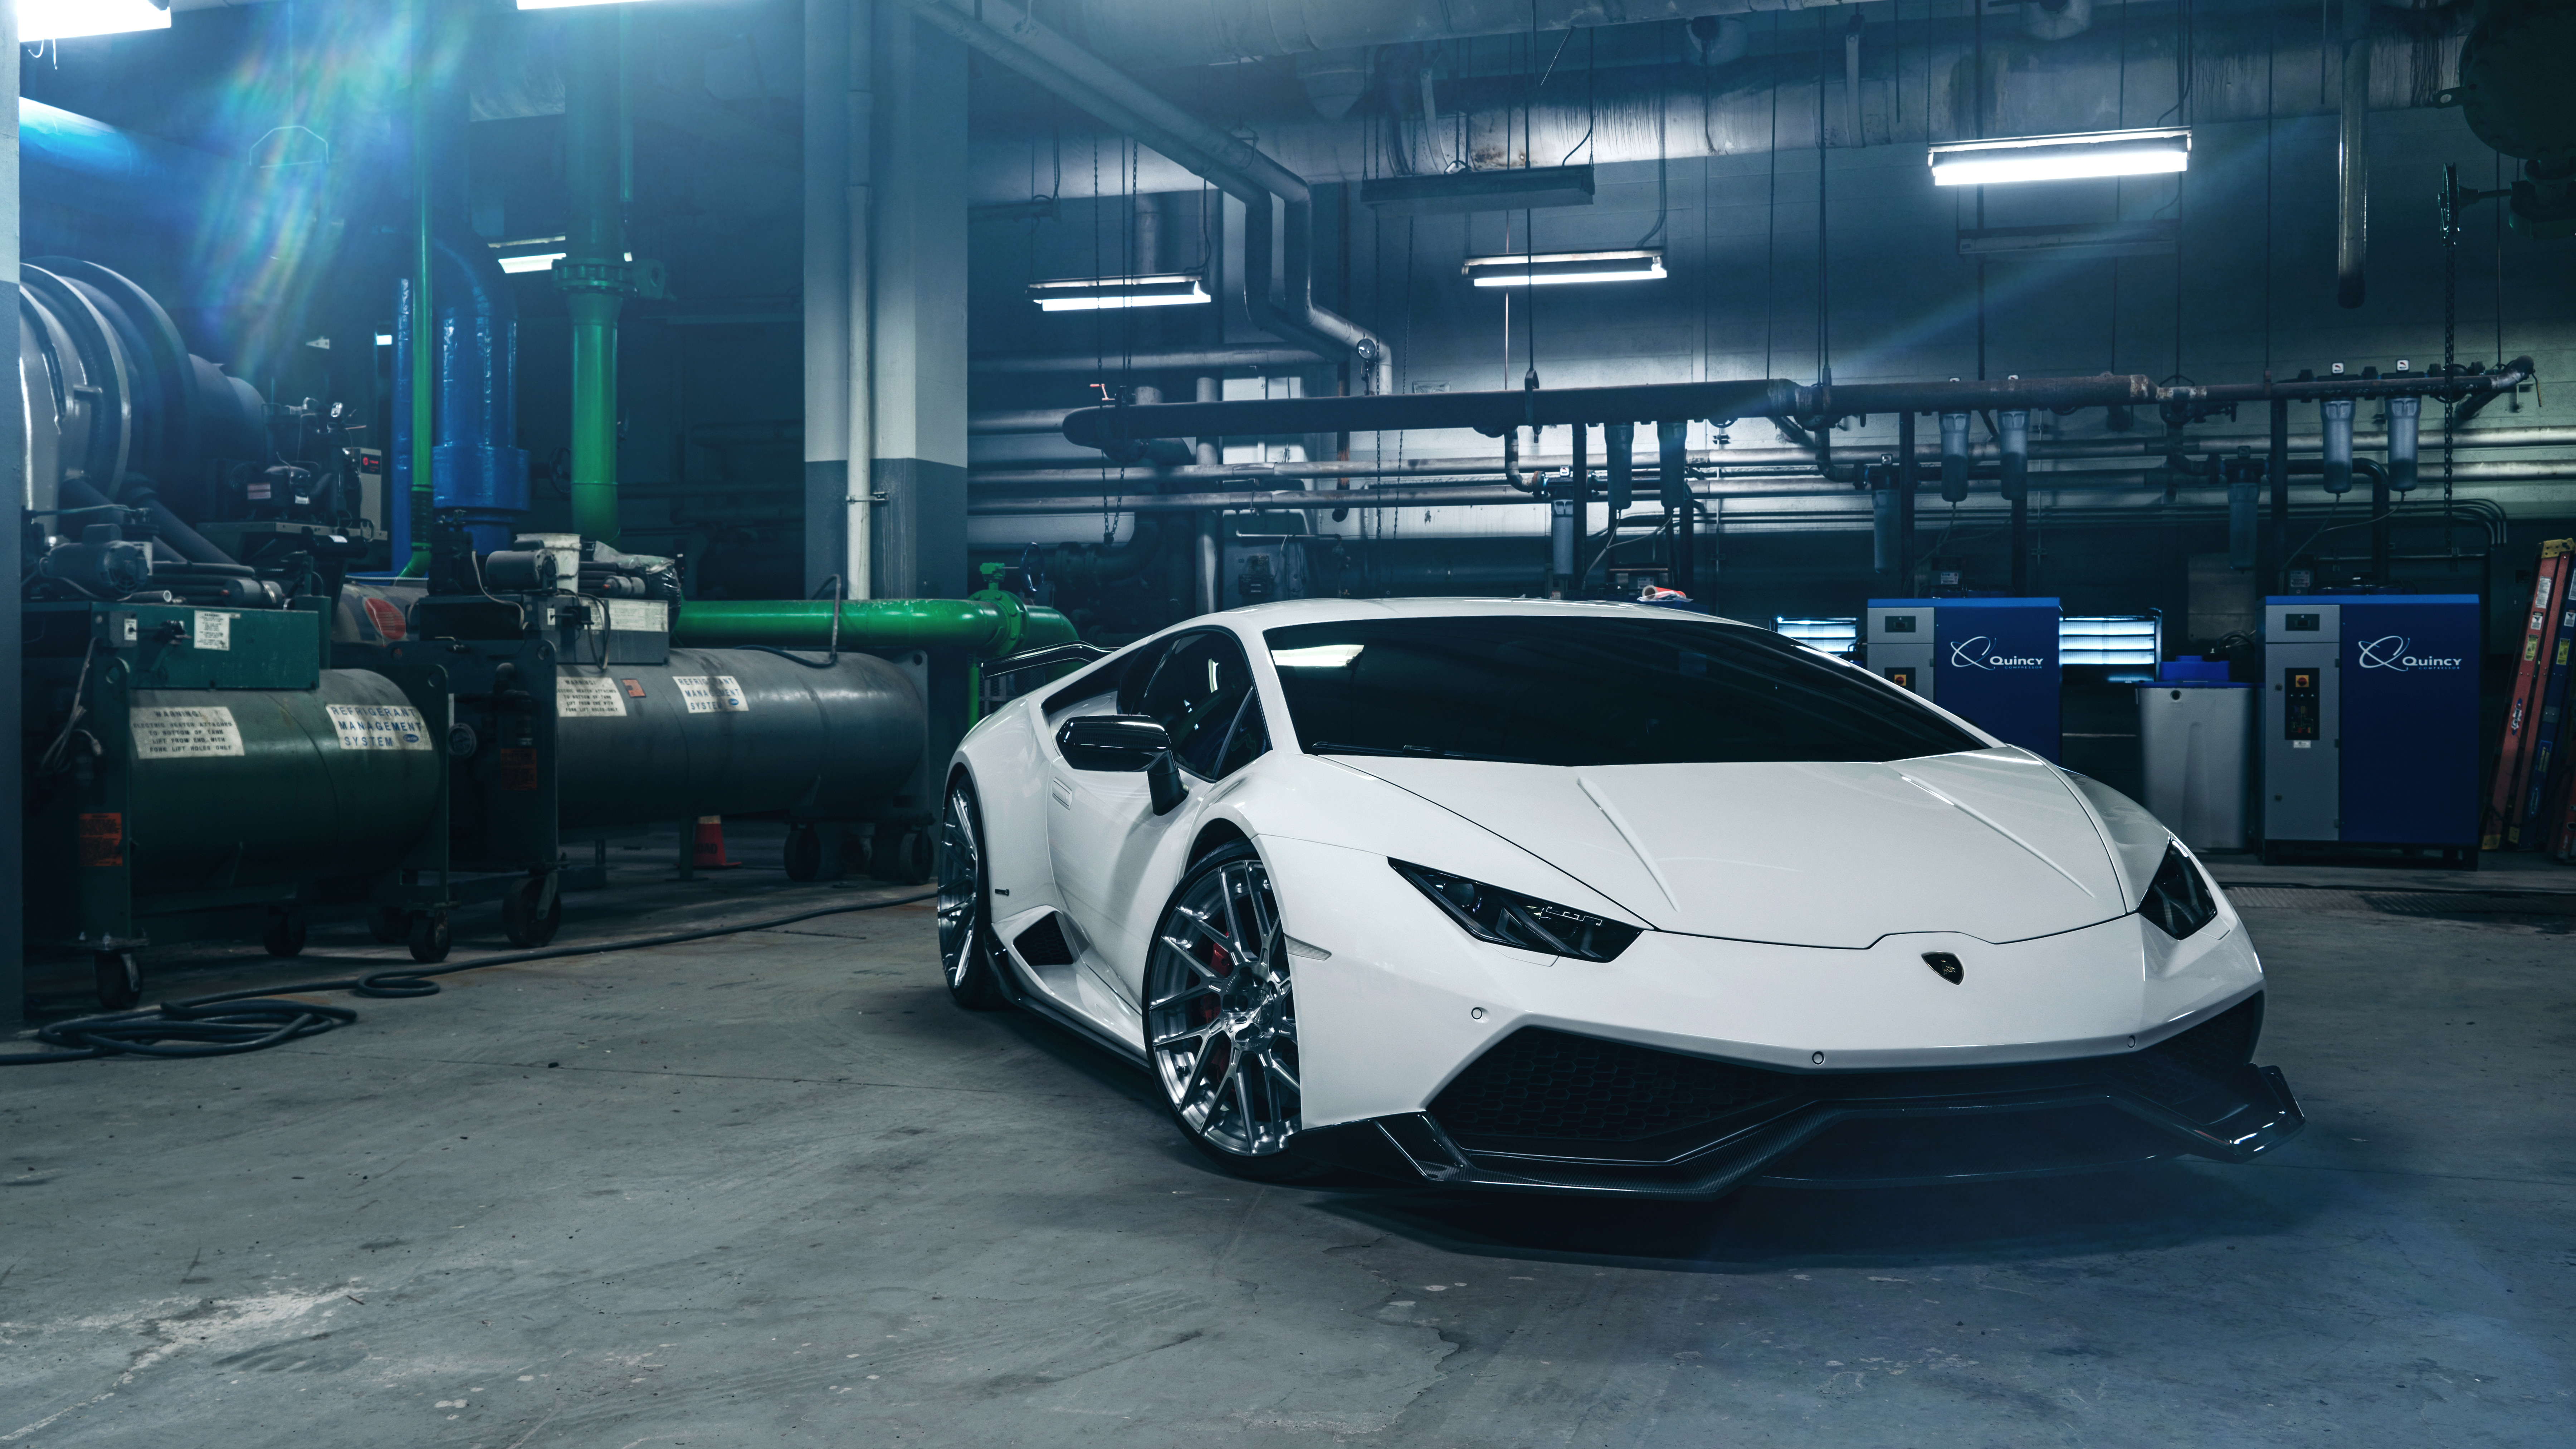 Adv1 White Lamborghini Huracan 4k 8k Wallpaper Hd Car